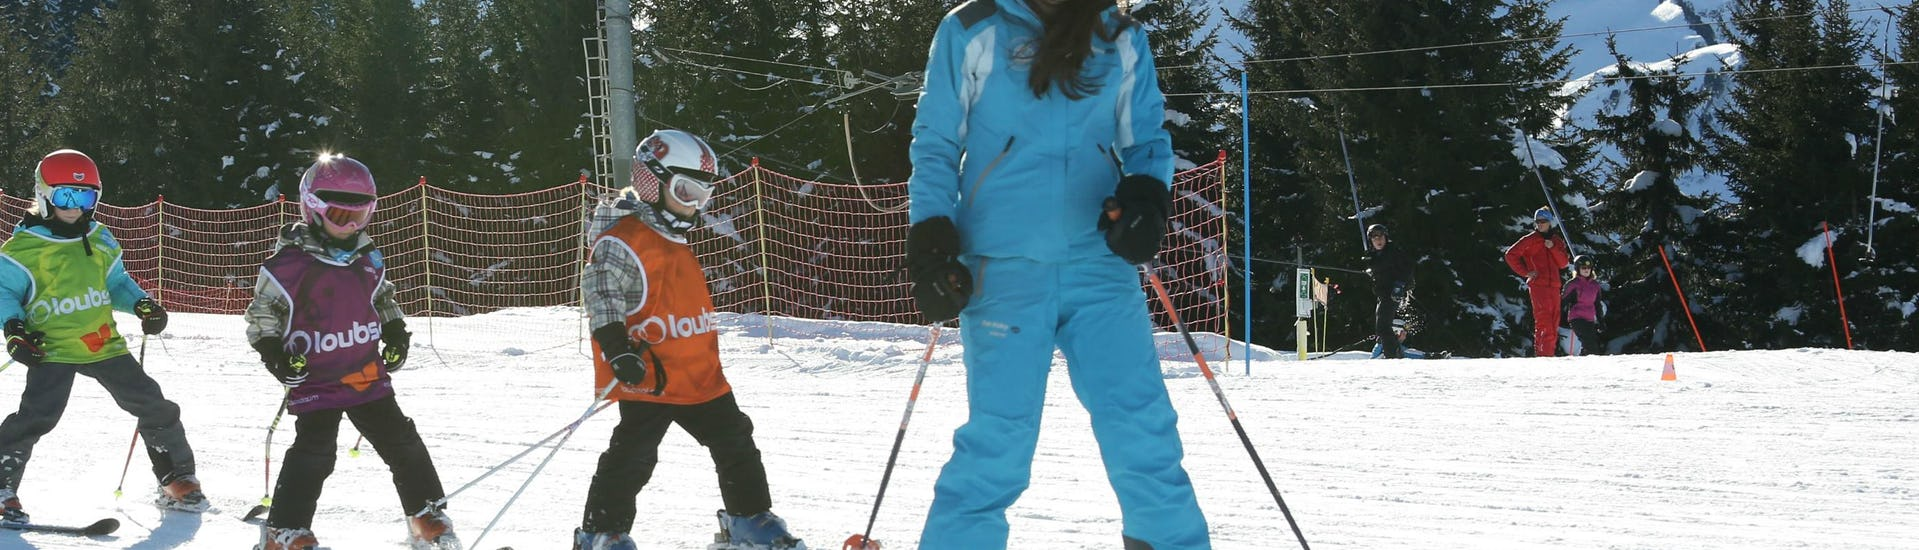 Kids Ski Lessons (4-6 years)